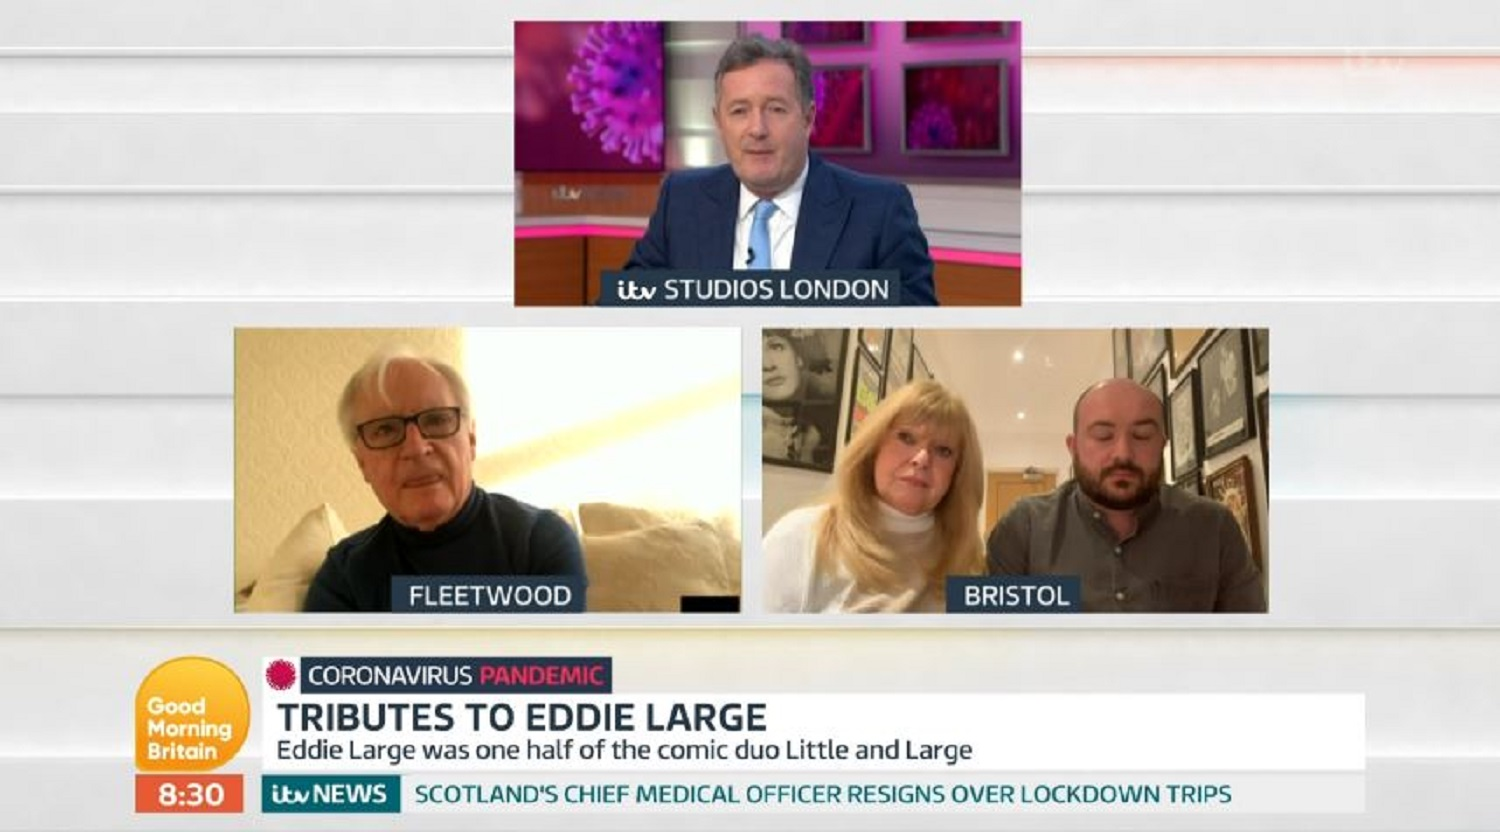 Syd Little breaks down talking about beloved comedy partner Eddie Large live on Good Morning Britain